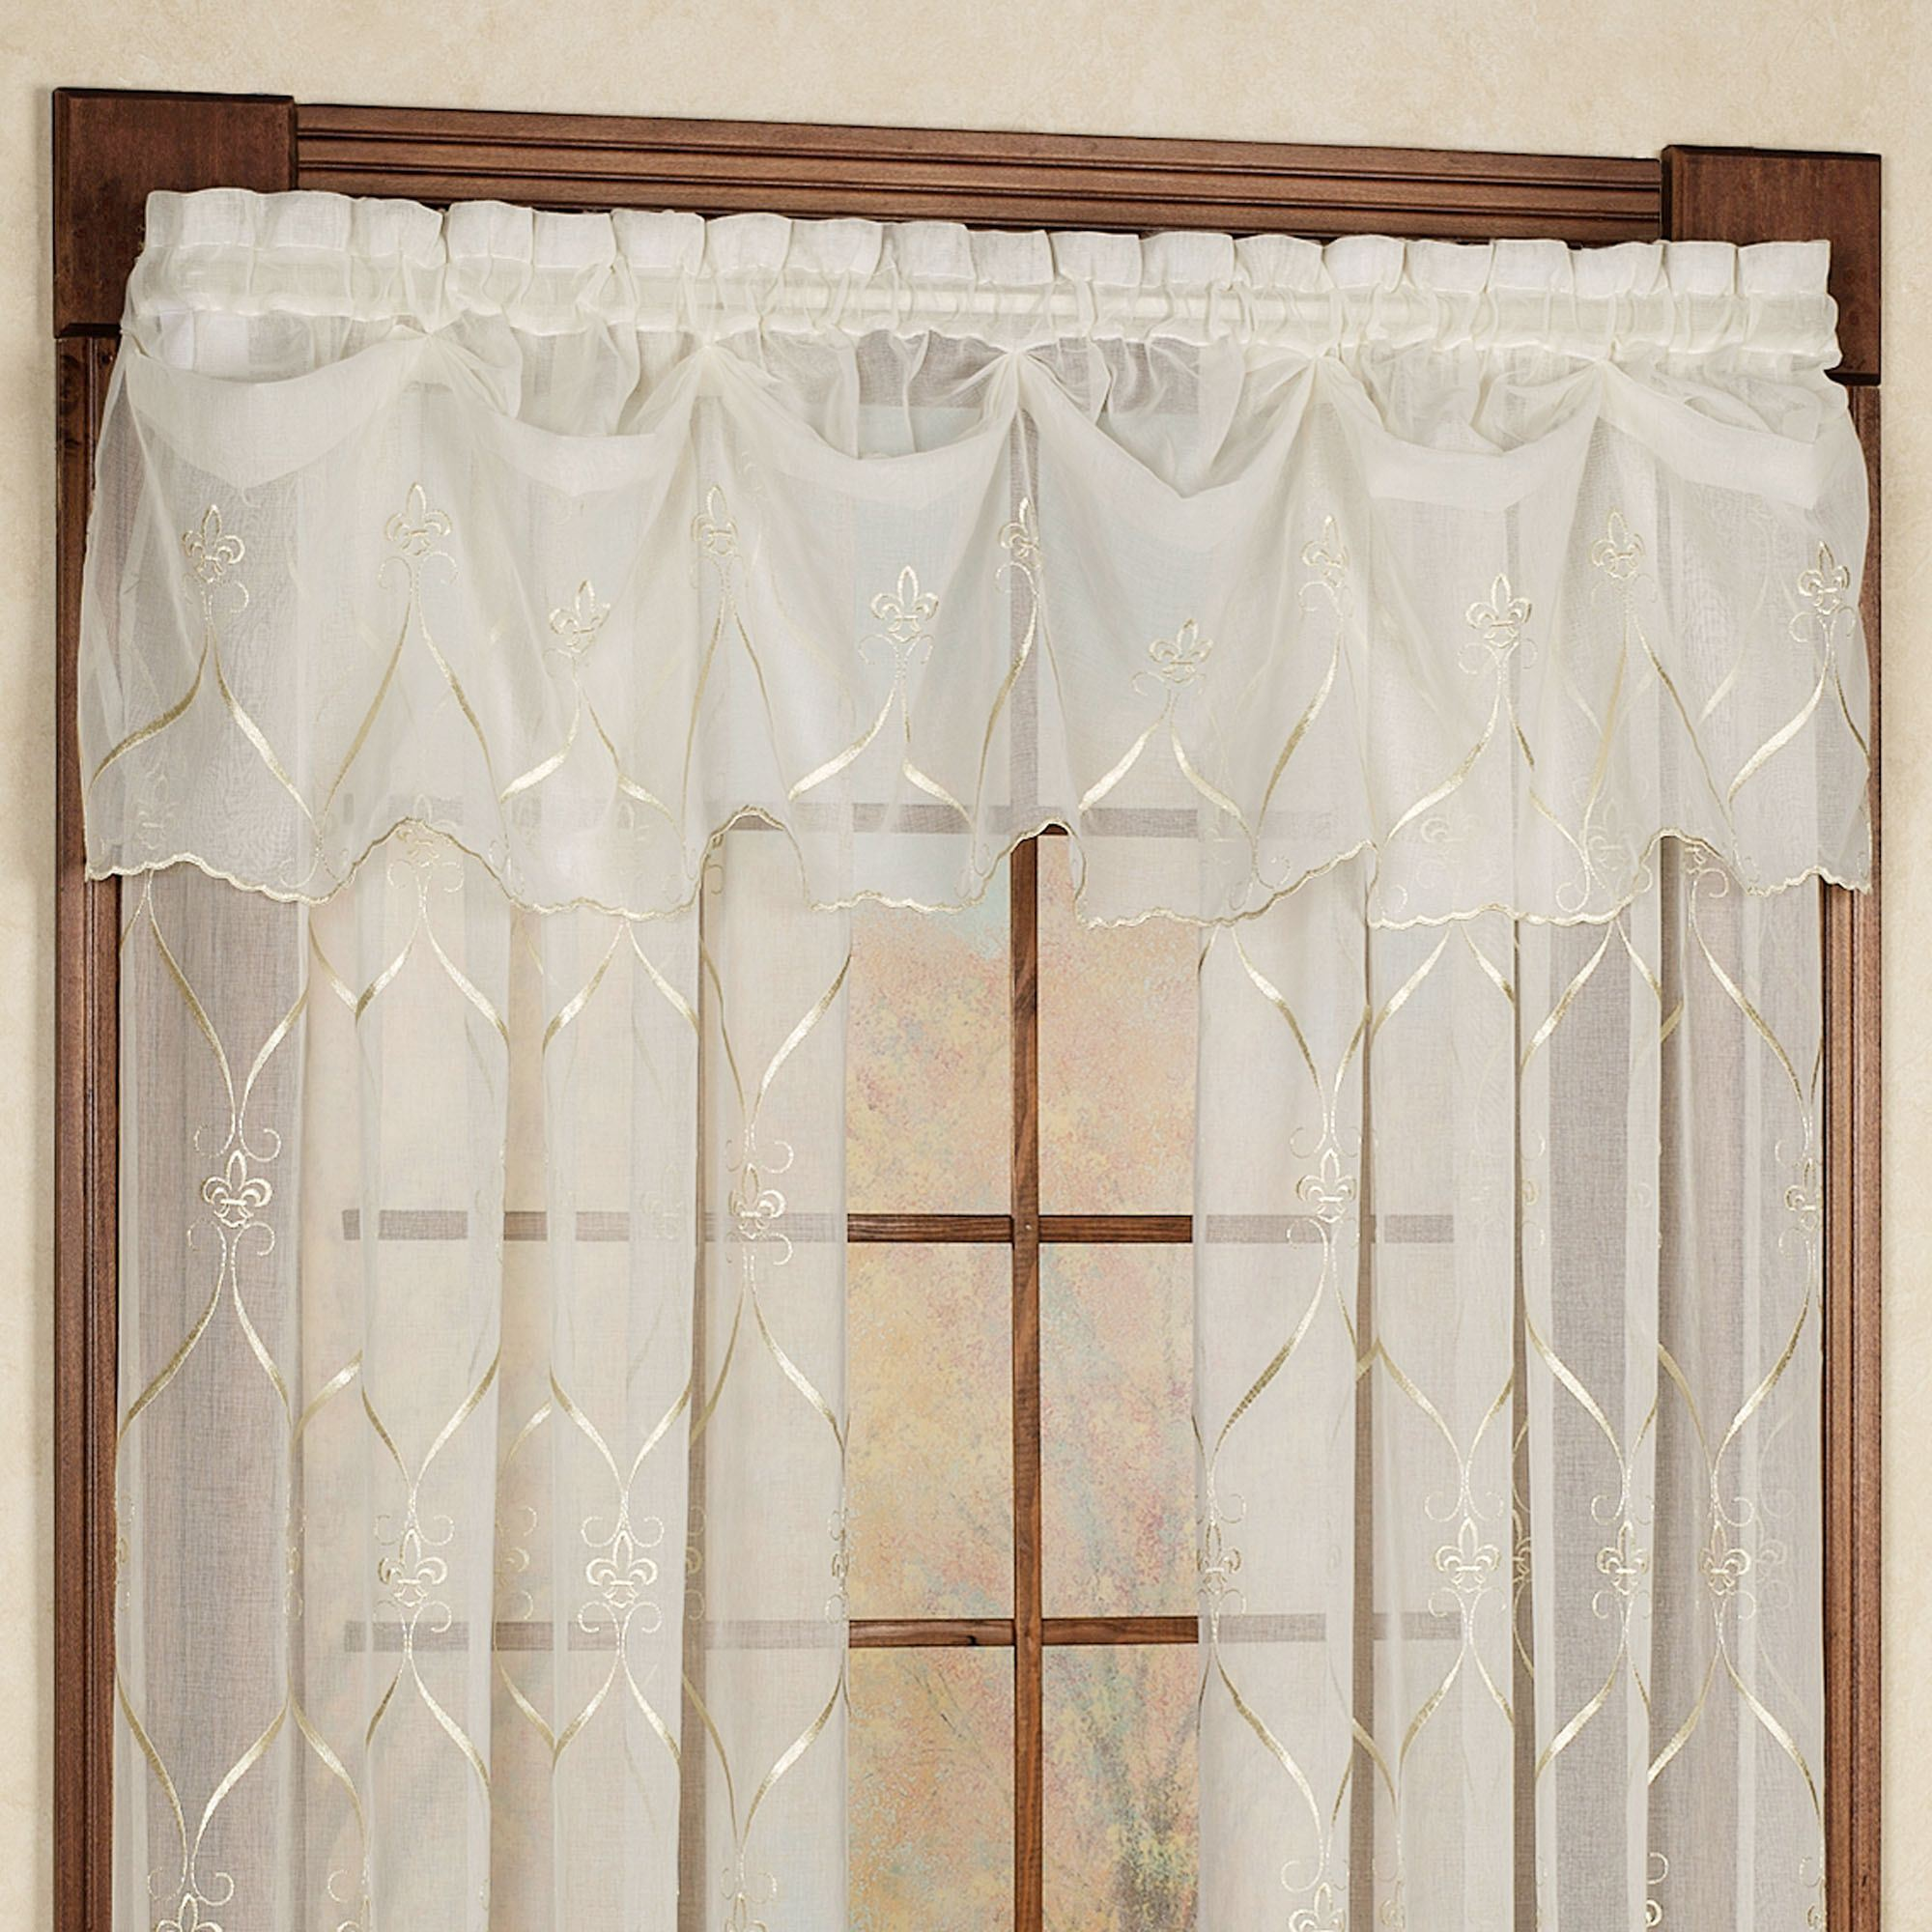 with drapes white curtain creamy hello kitty swags itm sheer pleated fabric swag ivory valance